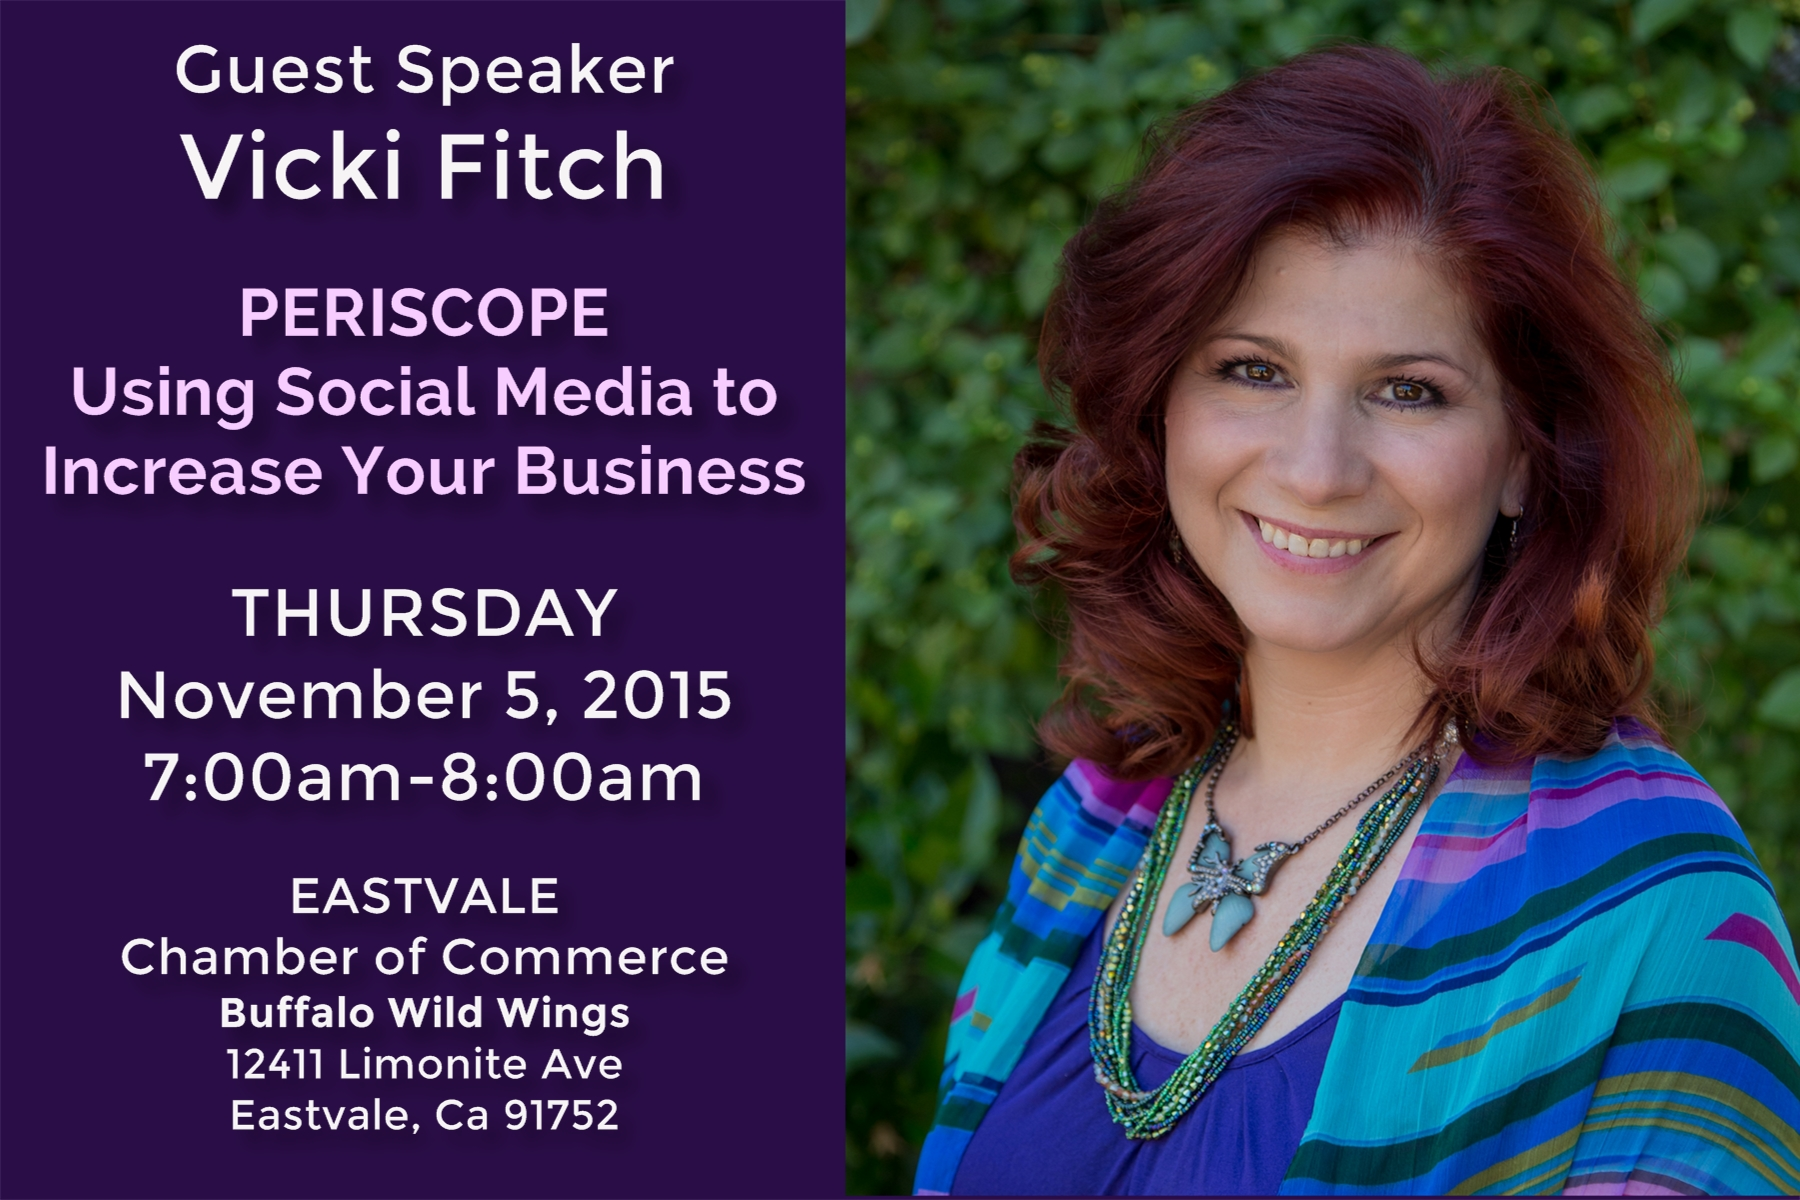 Vicki Fitch Speaker at Eastvale Chamber of Commerce